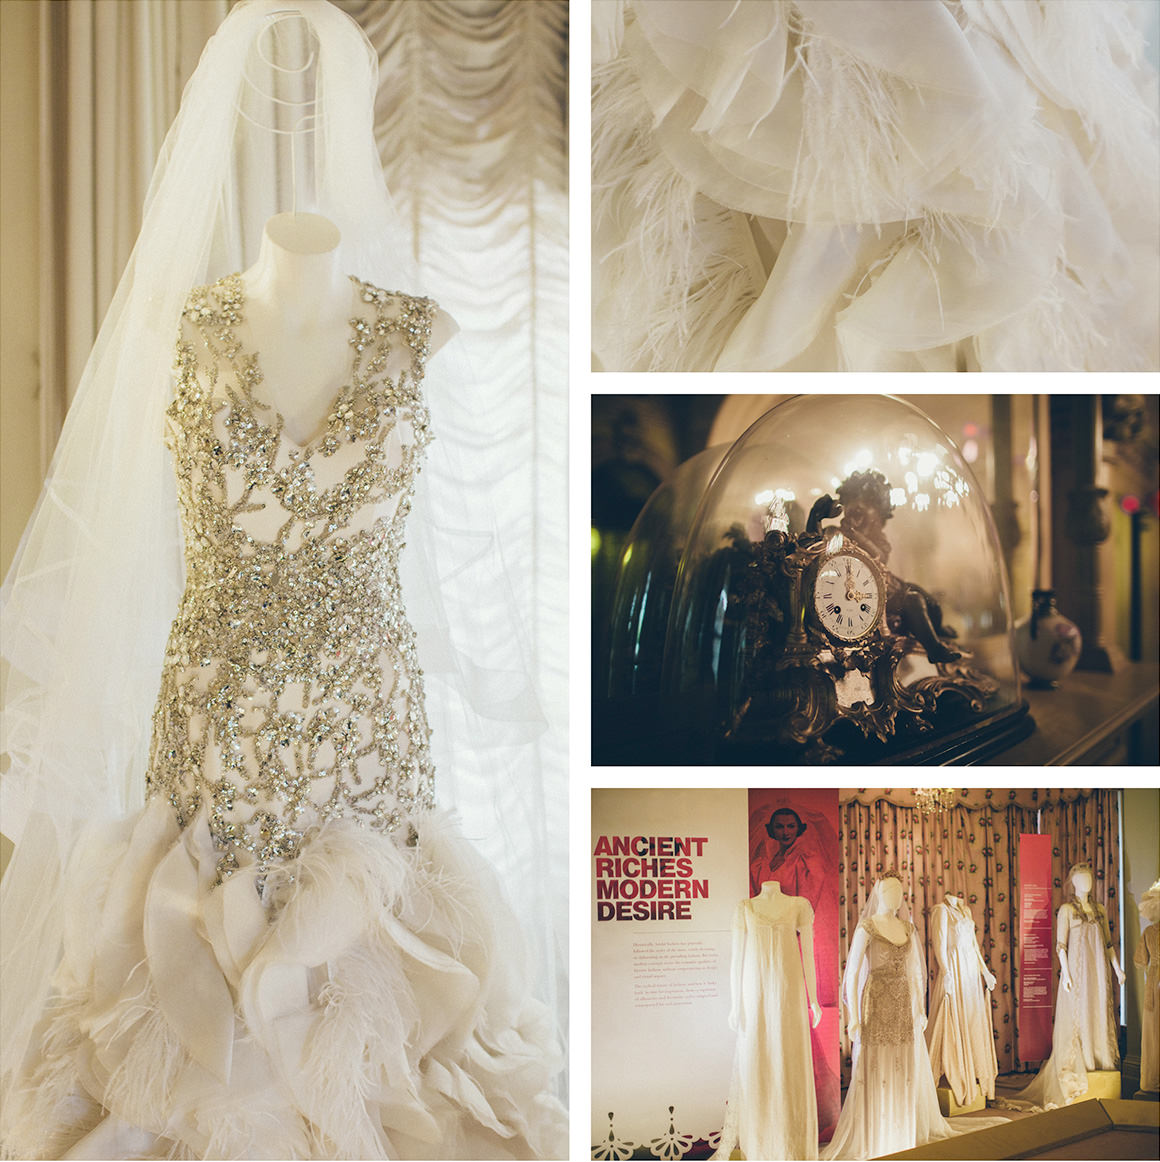 stunning wedding dresses - Melbourne exhibition